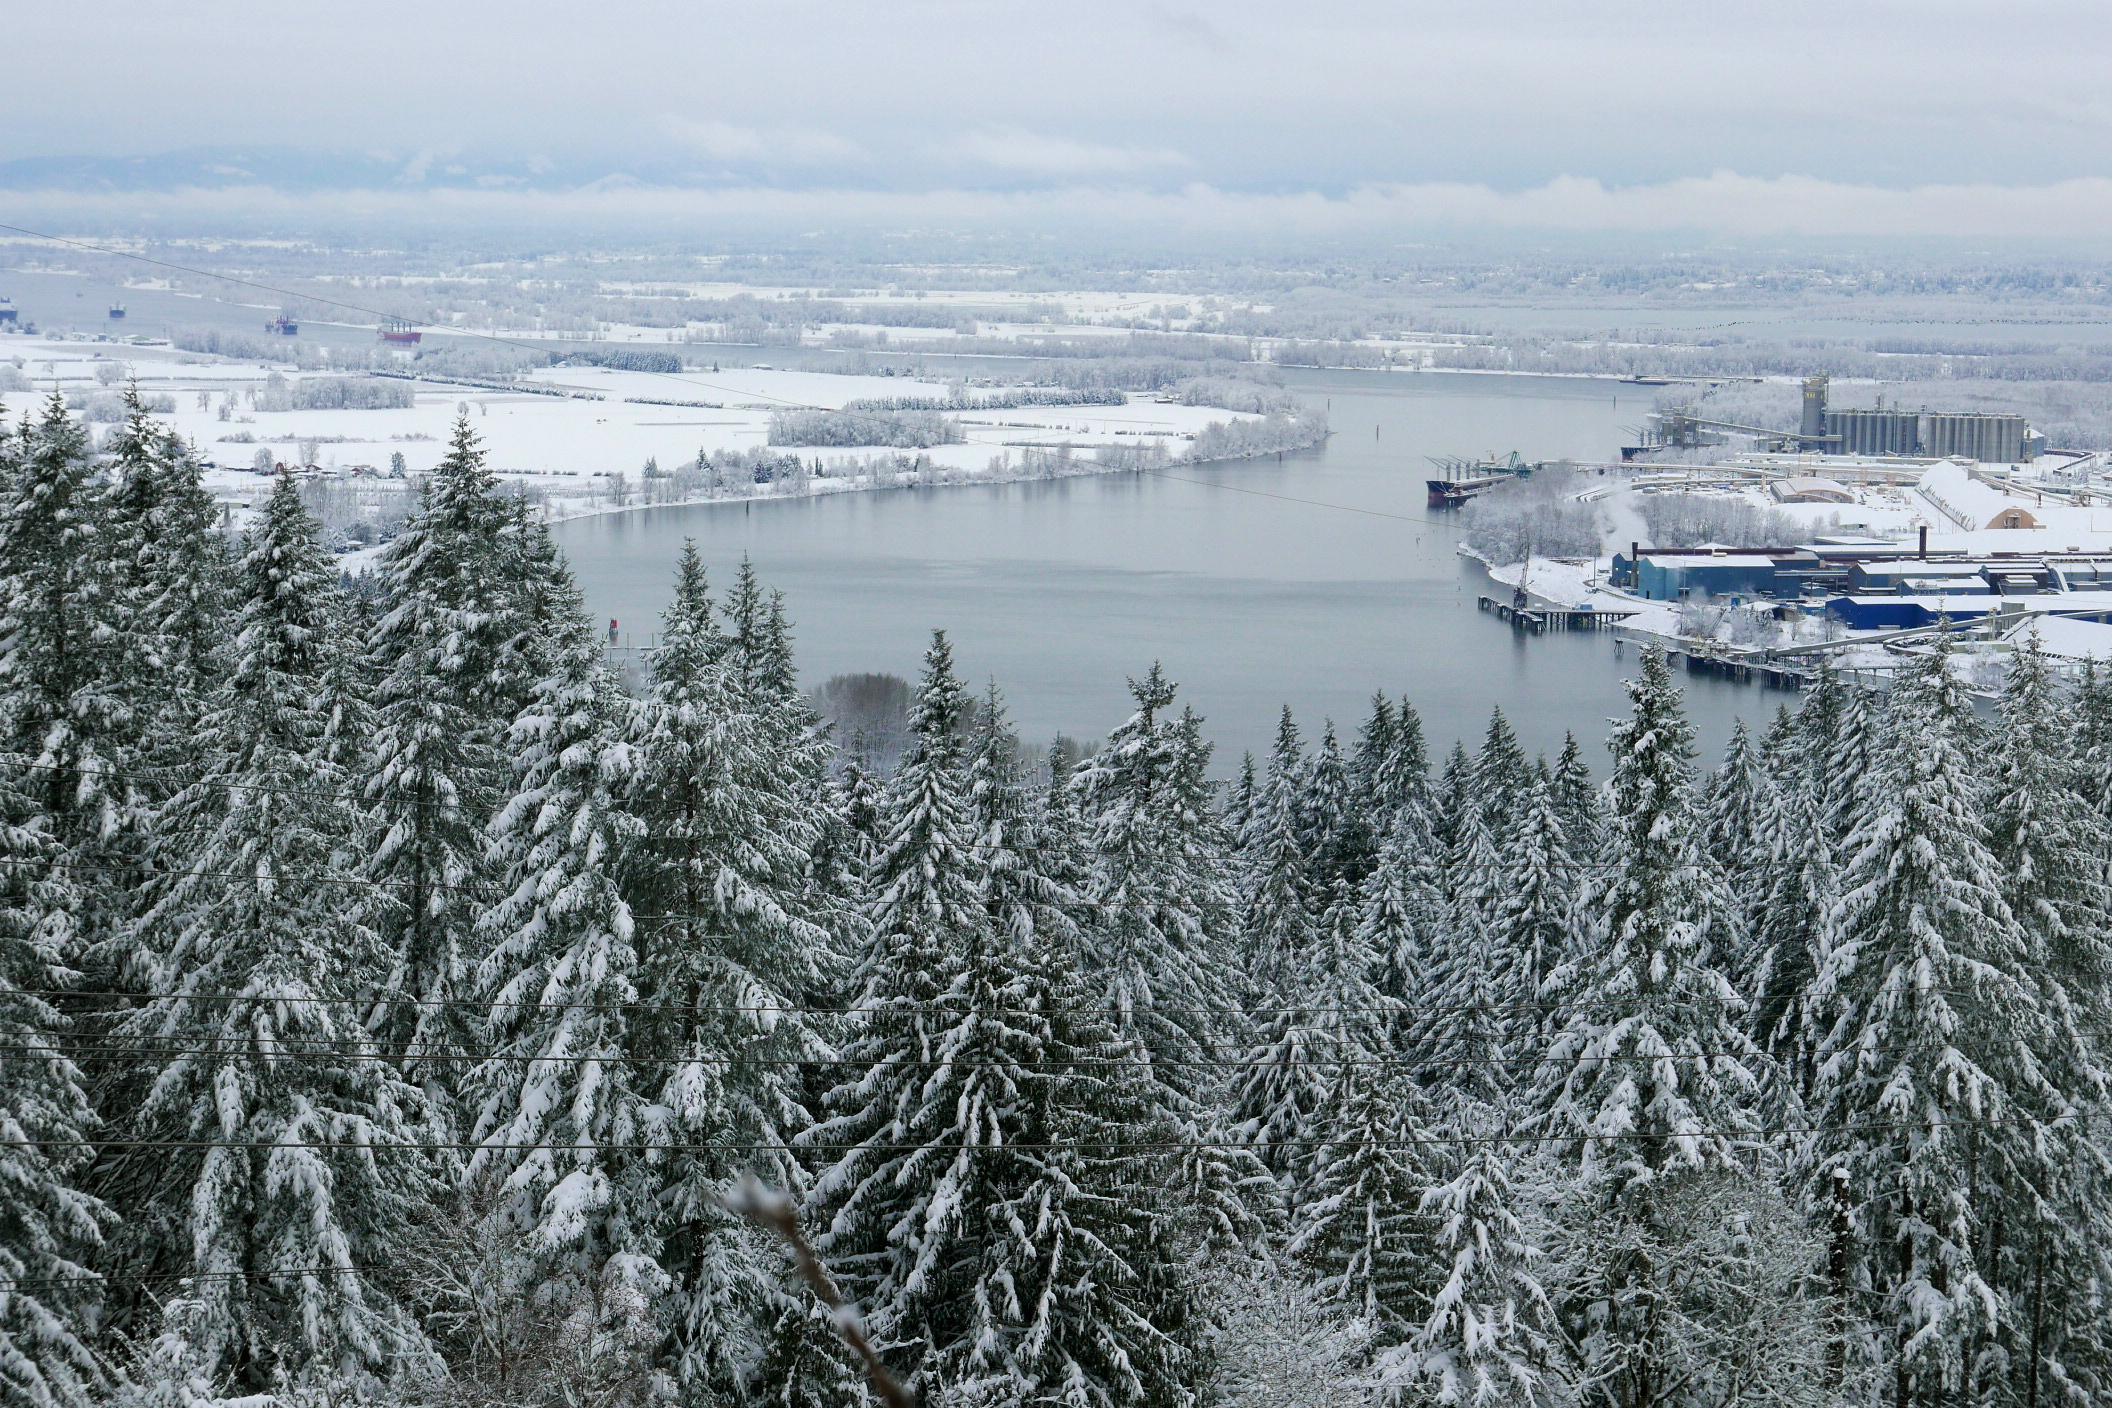 The forest where the frogs live, and the Willamette River's confluence with the Columbia, an industrial area on the right, Sauvie Island on the left, and Washington State in the distance.